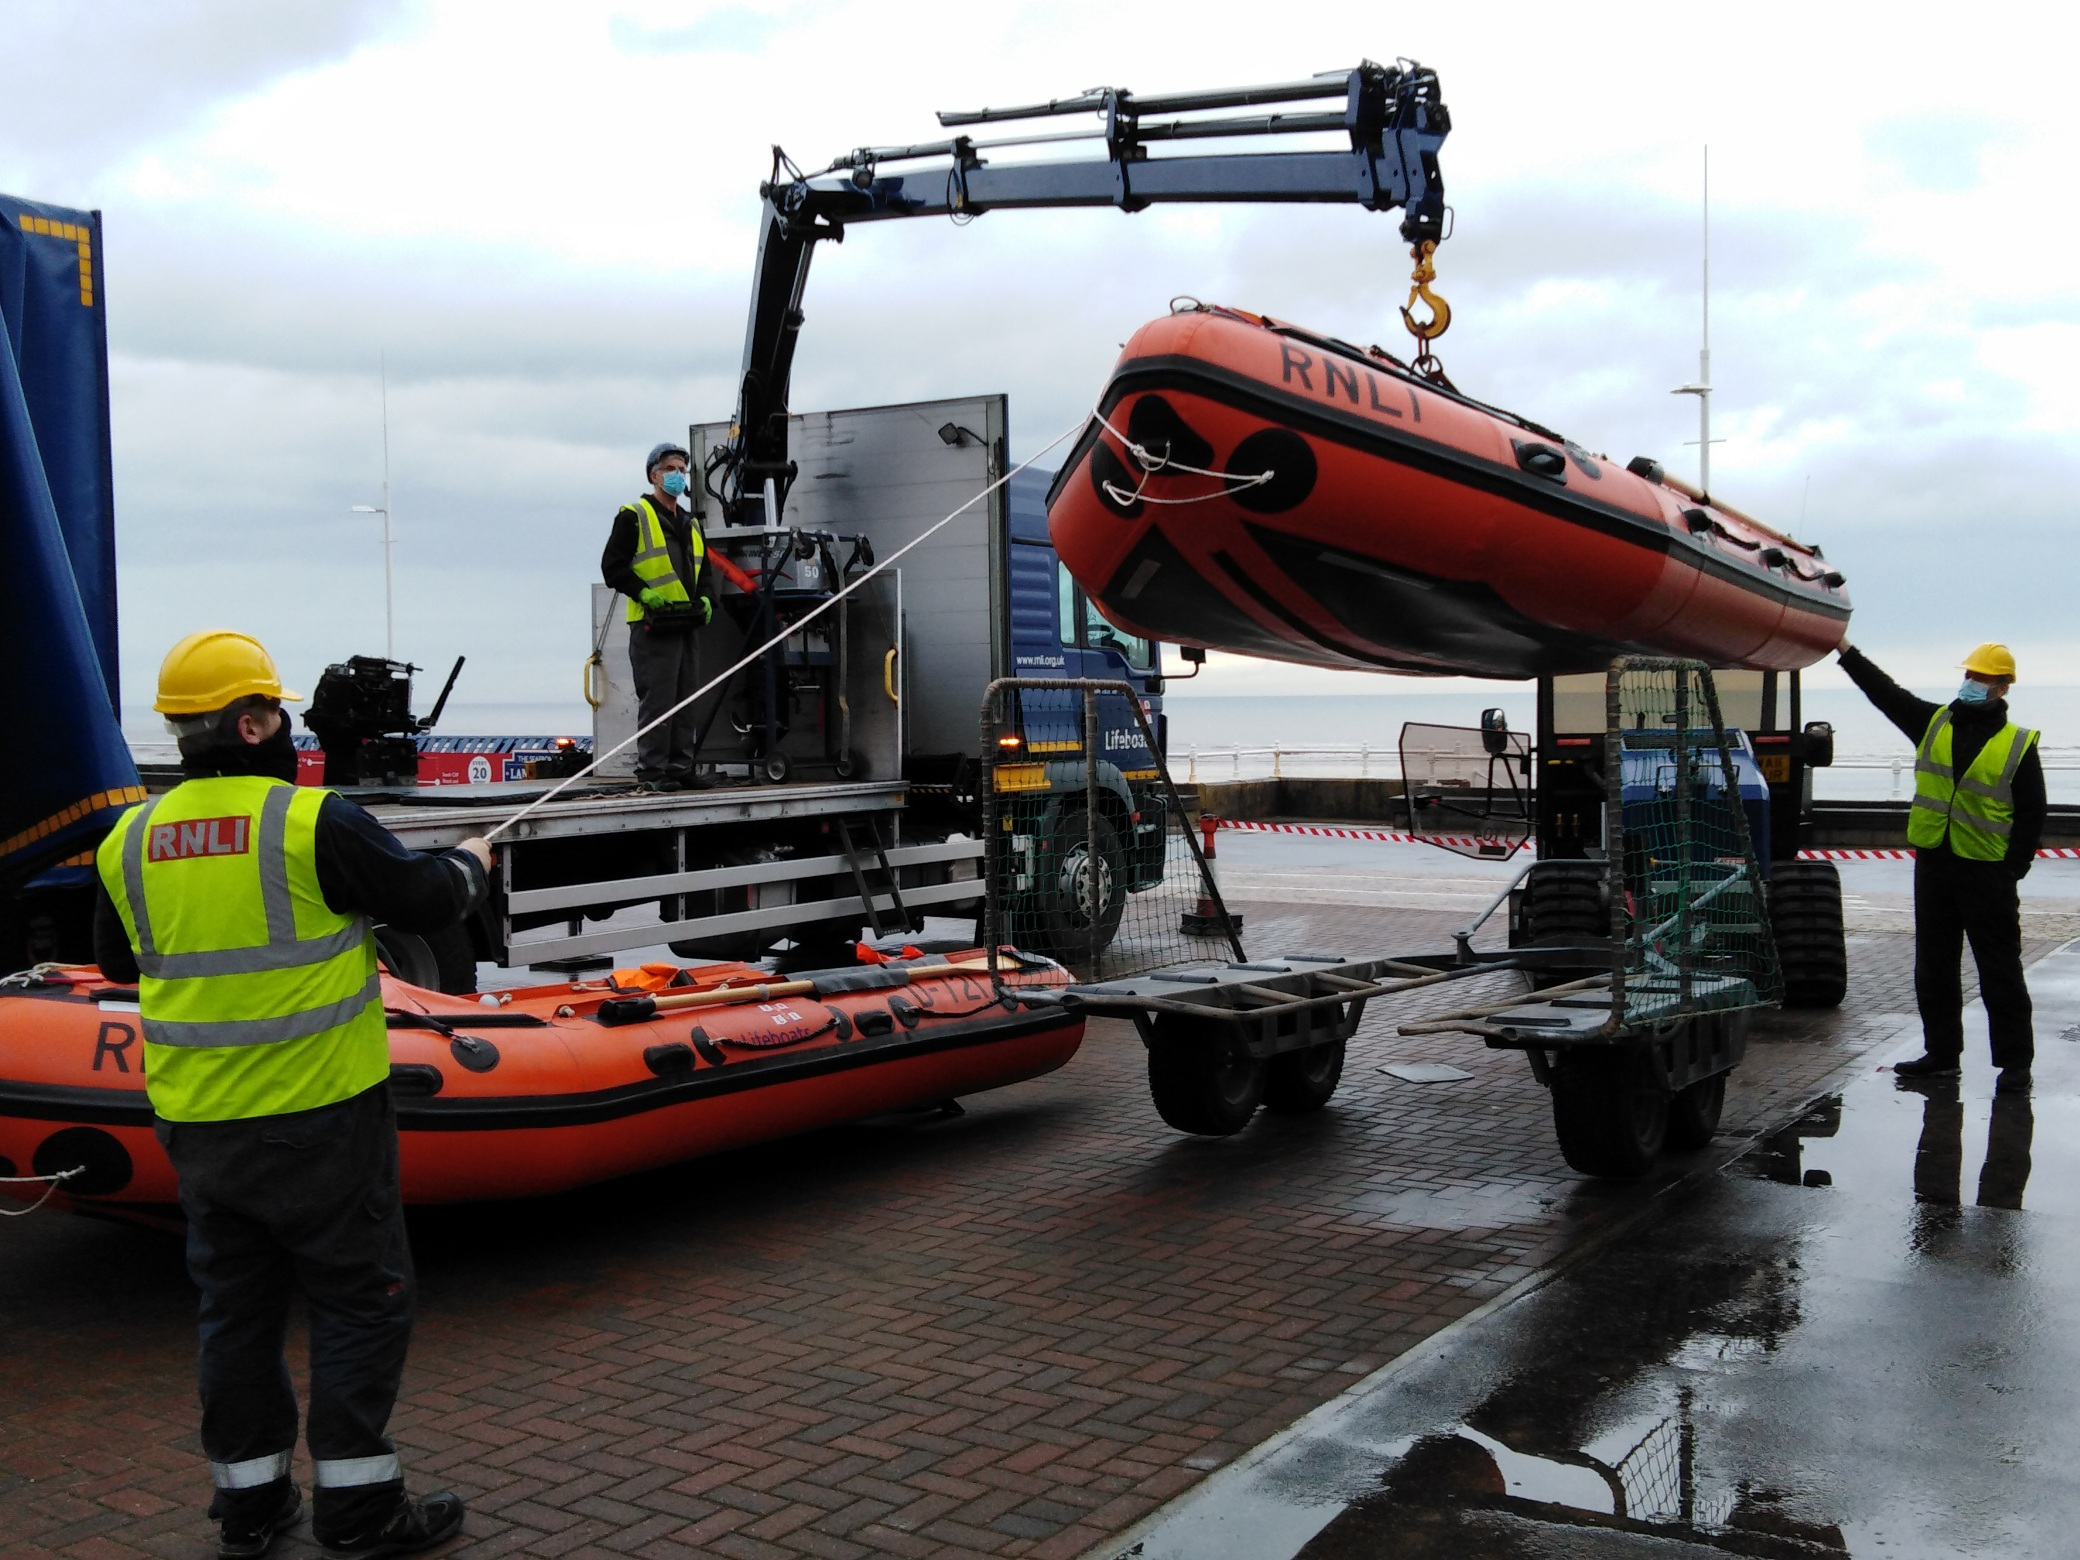 An orange inshore lifeboat is transferred from a lorry onto a tractor trailer